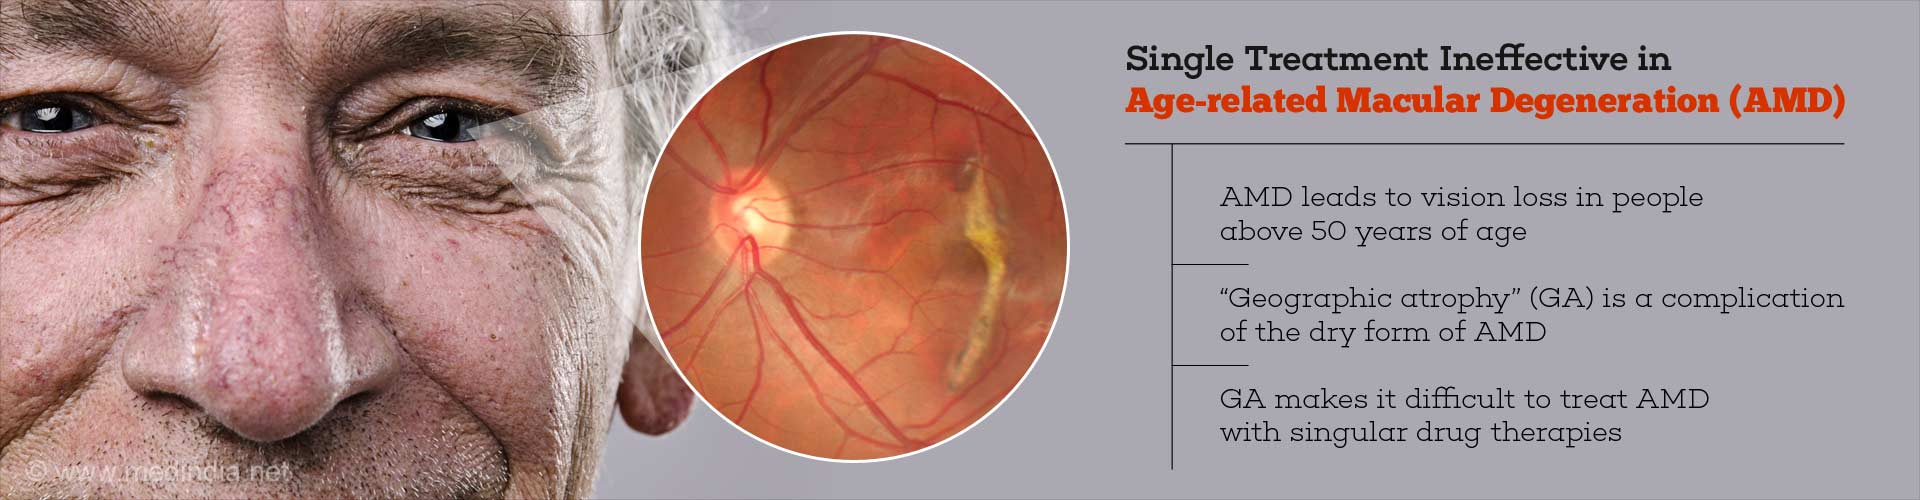 Single treatment ineffective in Age-related Macular Degeneration (AMD) - AMD leads to vision loss in people above 50 years of age -